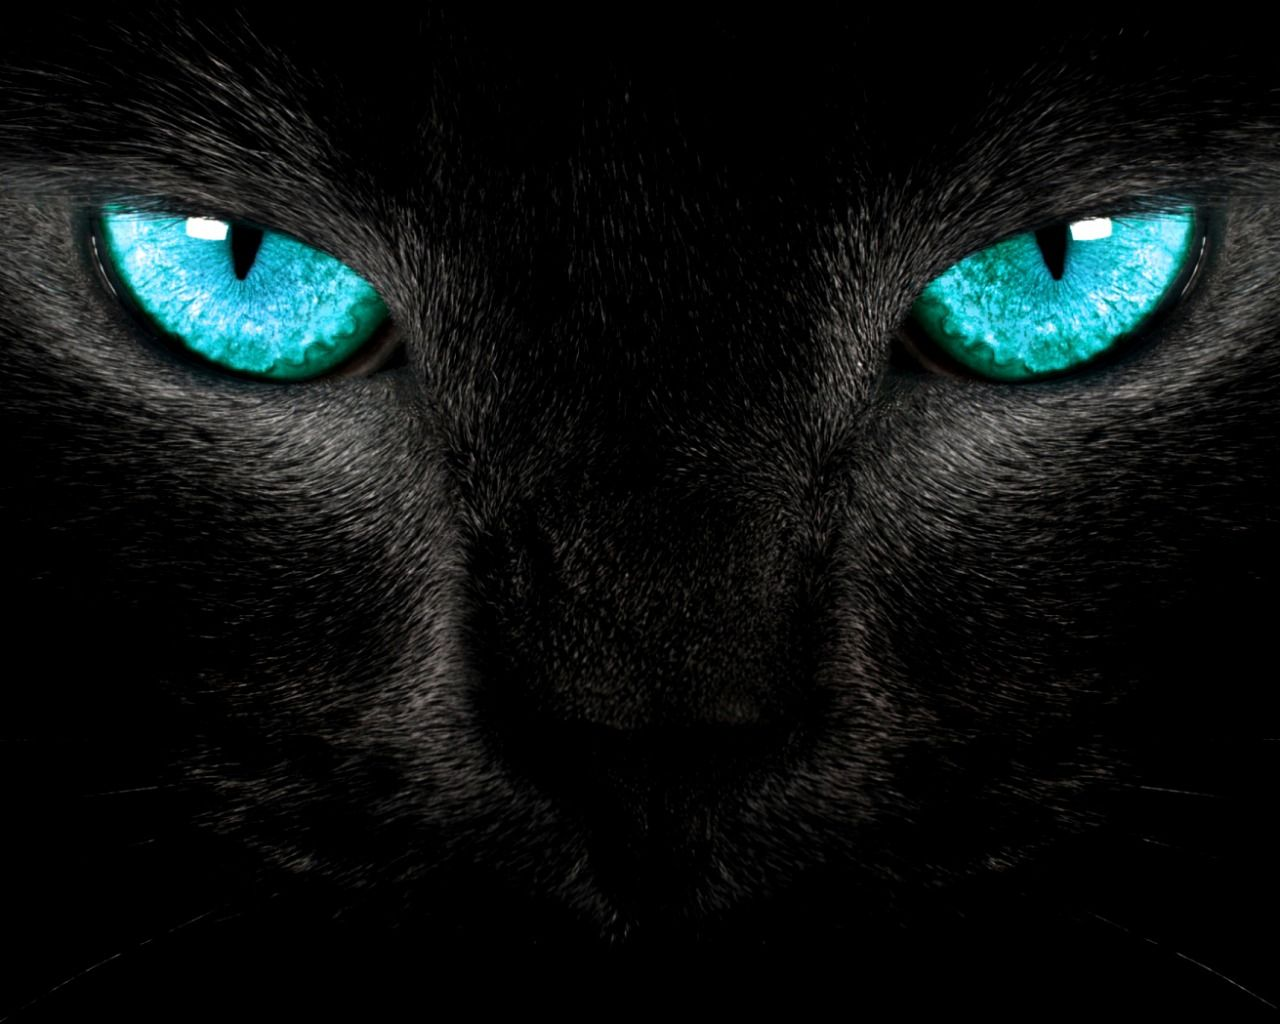 Black Cat Eyes Wallpaper: Black Cat Eyes, Eyes